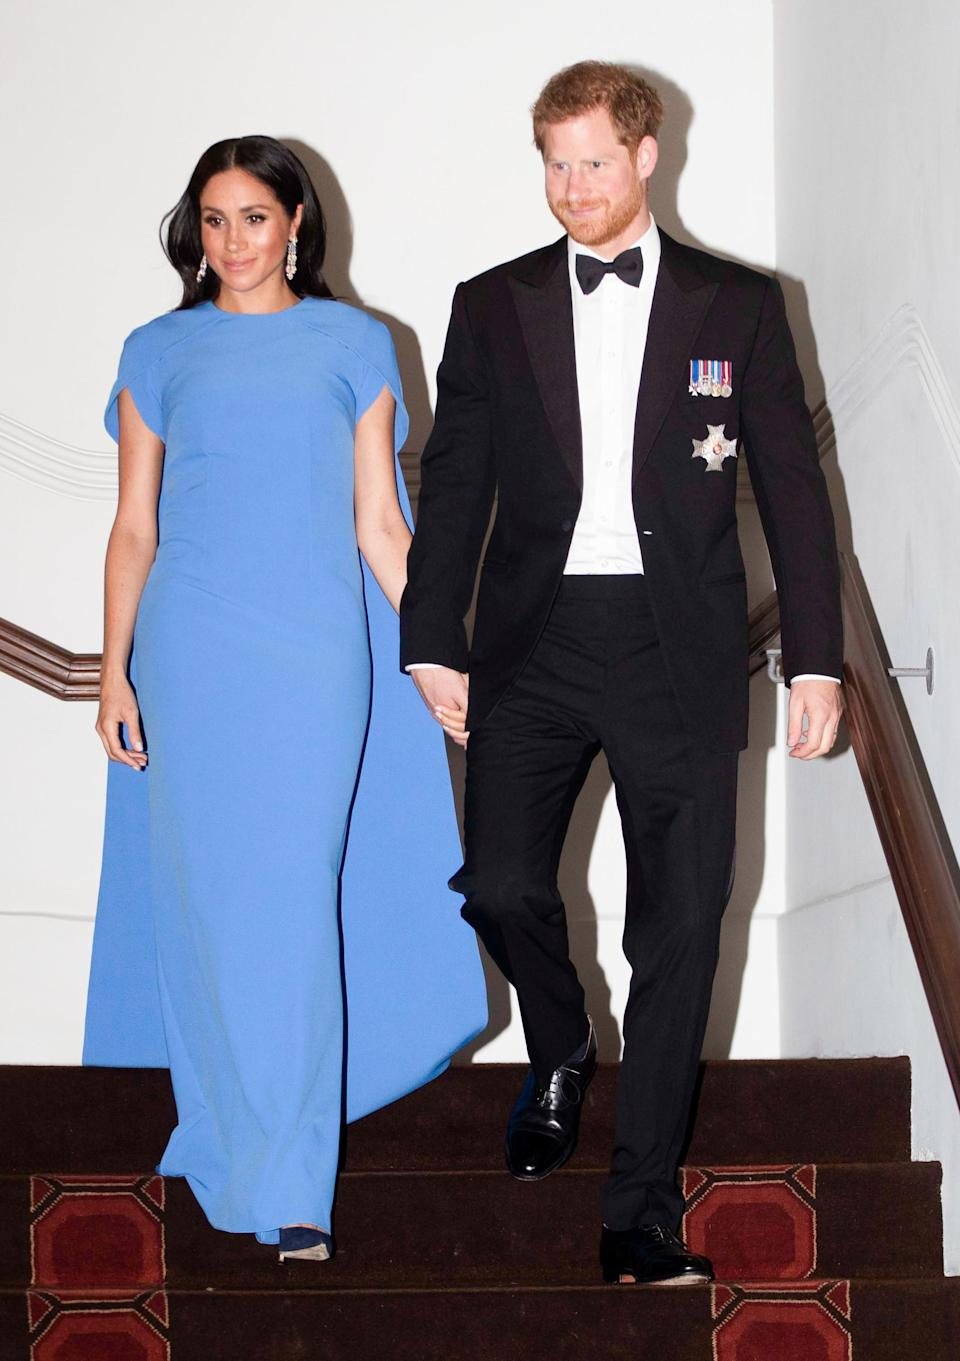 "<p>The Duchess of Sussex showcased her blossoming baby bump on day seven of the couple's royal tour in a £1,095 dress by <a href=""https://www.safiyaa.com/collections/dresses/products/ginkgo-cape-dress"" rel=""nofollow noopener"" target=""_blank"" data-ylk=""slk:Safiyaa"" class=""link rapid-noclick-resp"">Safiyaa</a>. <em>[Photo: Getty]</em> </p>"